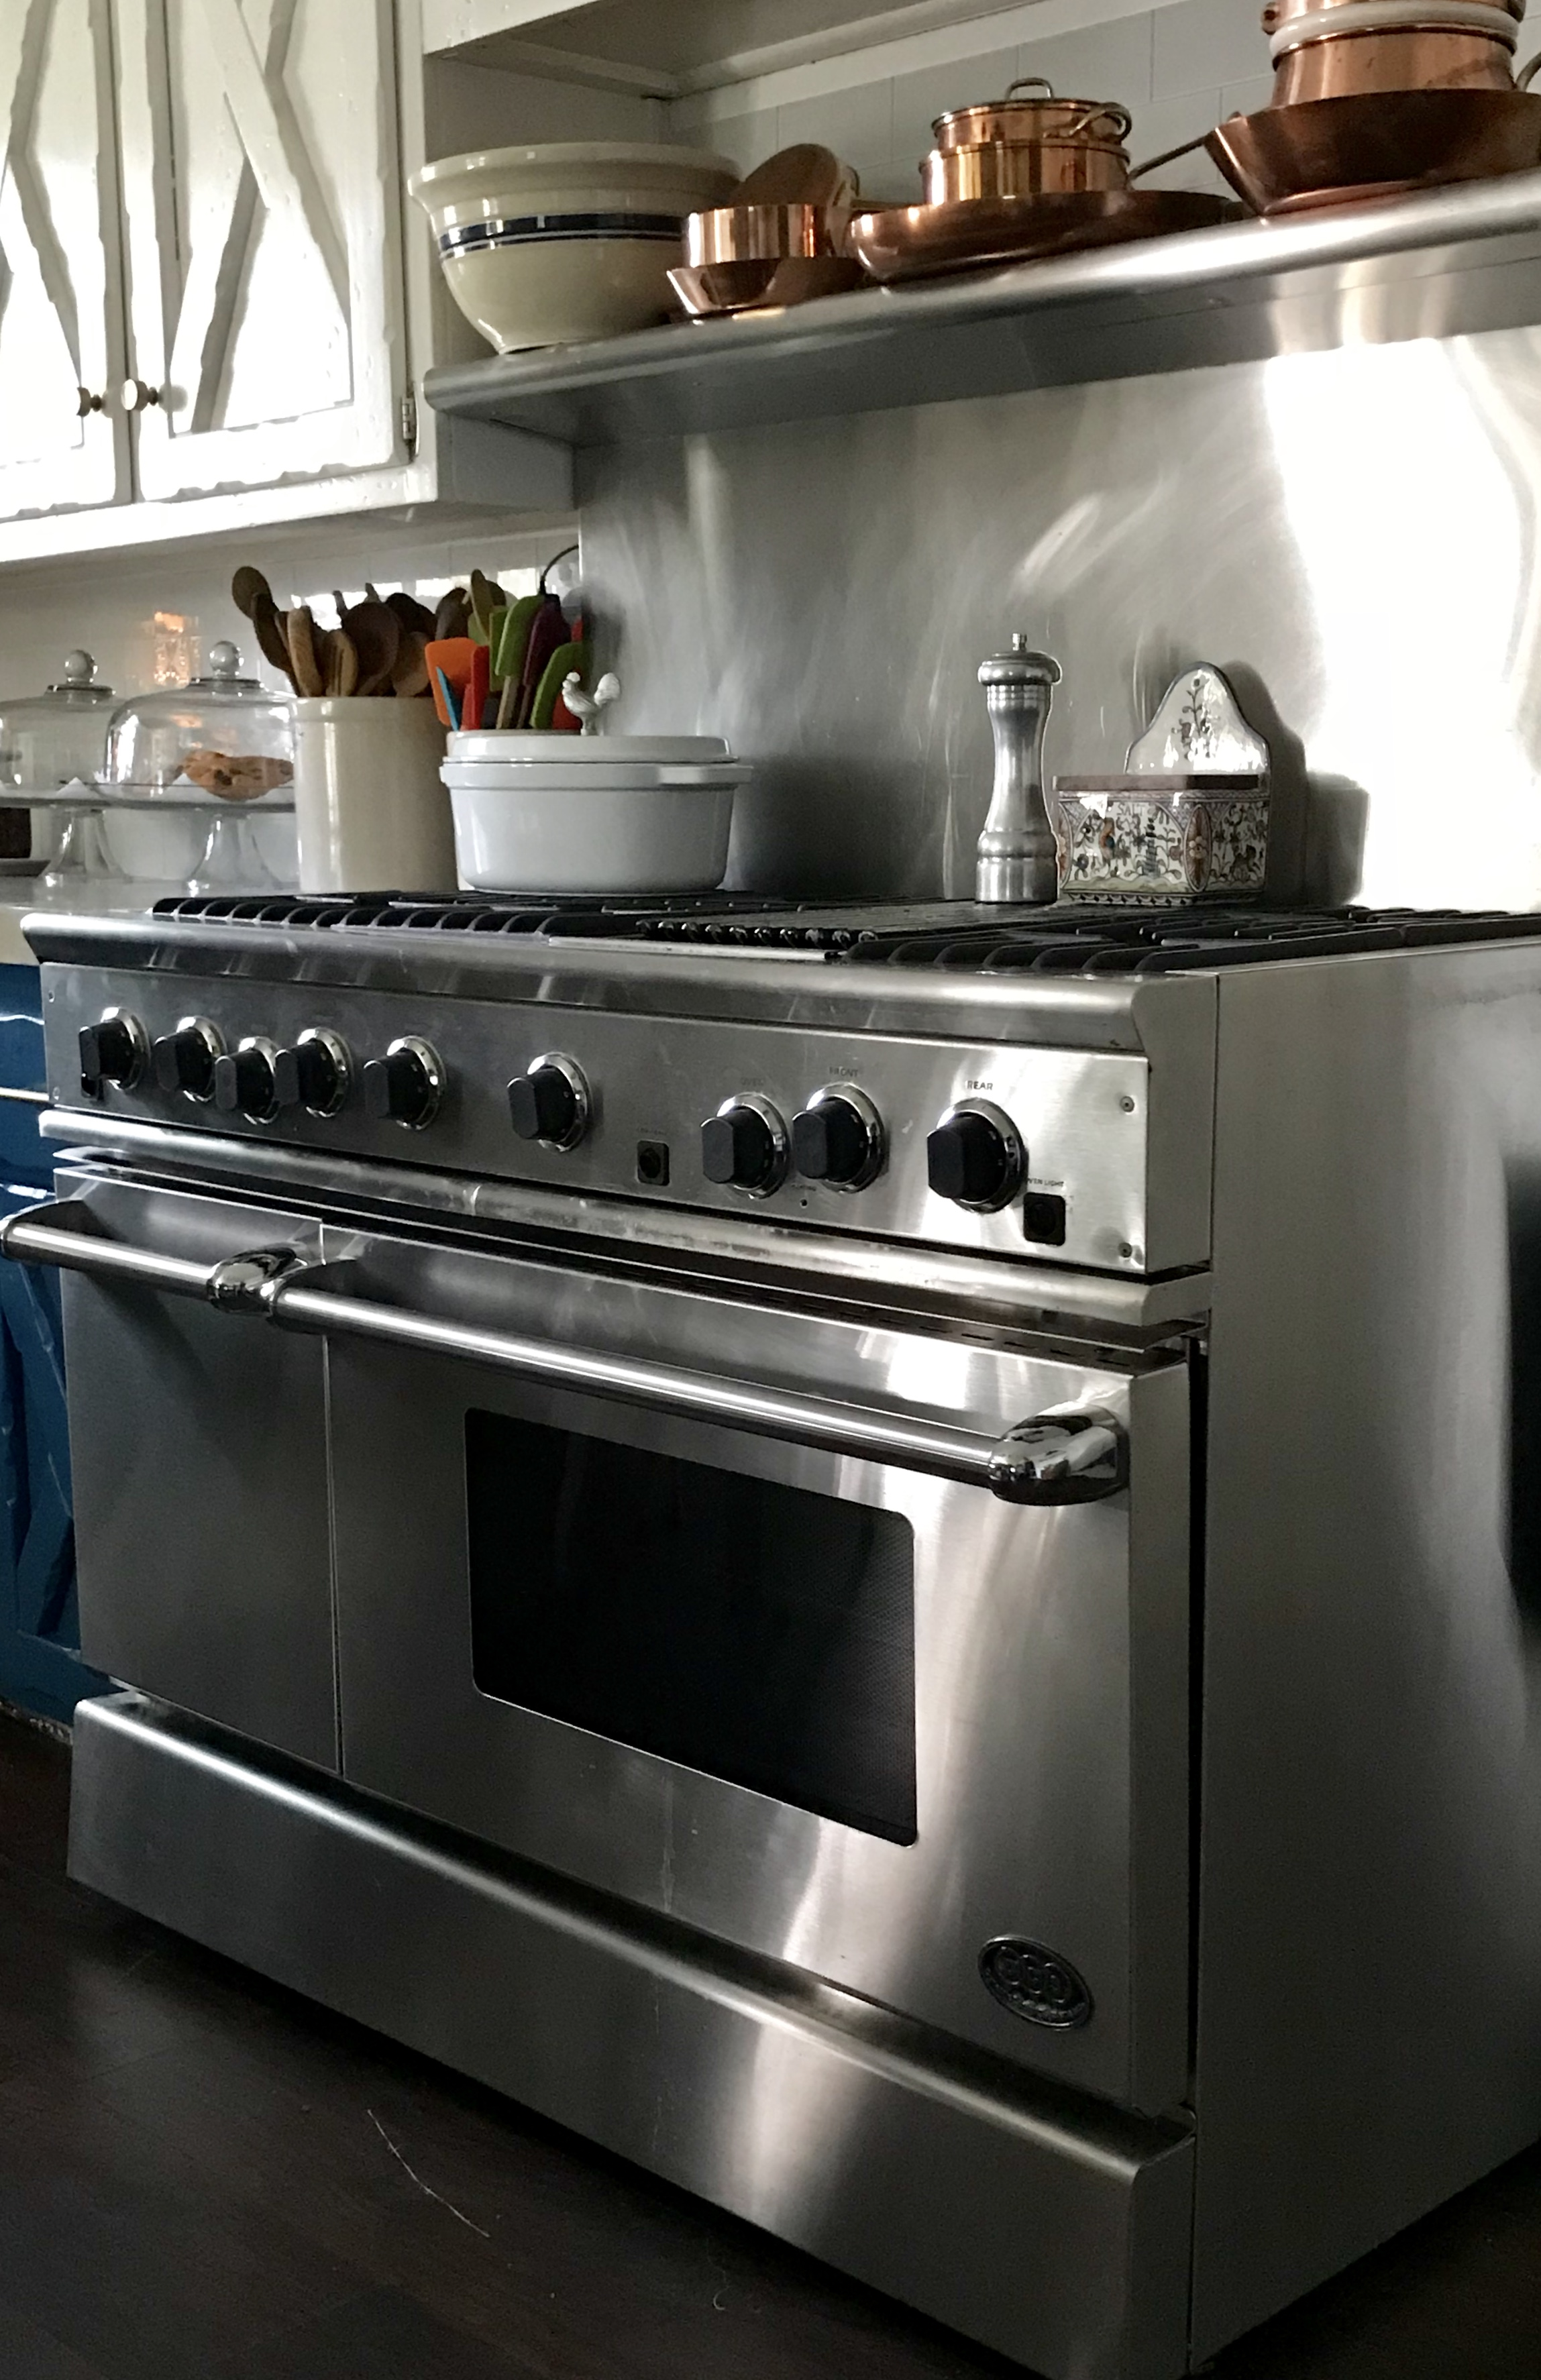 stove - a craigslist find, 48 DCS stove